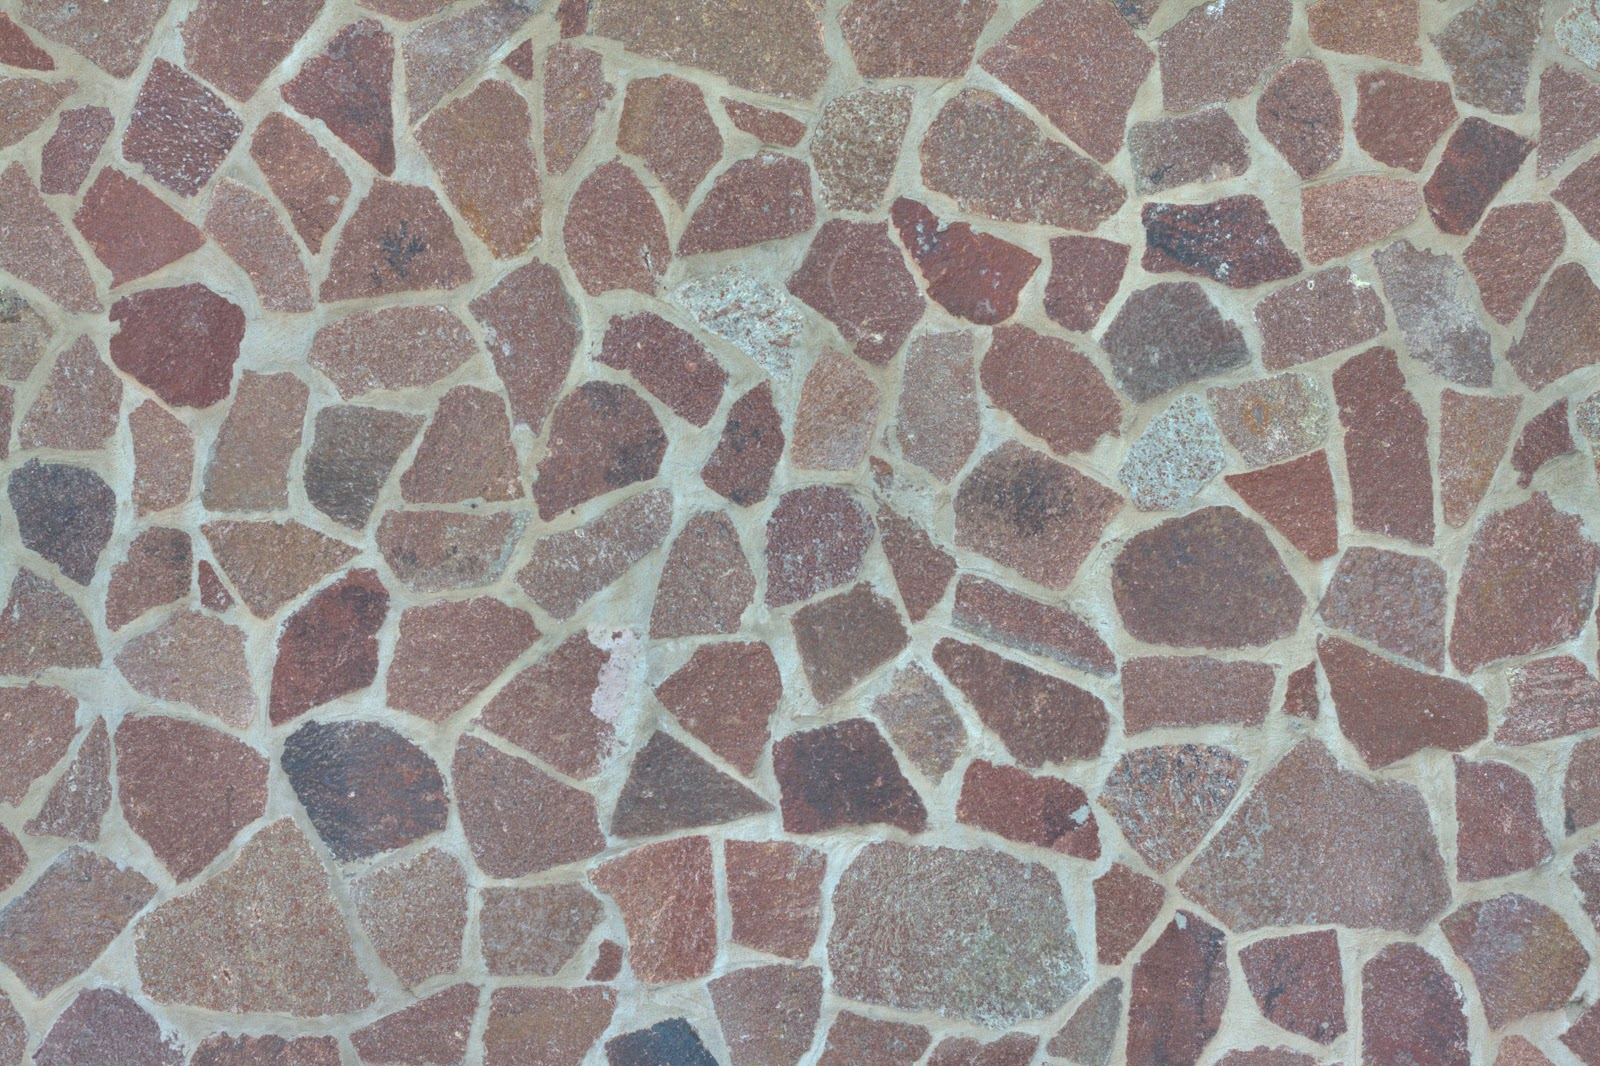 stone floor tile texture. Stone Giraffe Floor Tiles Texture 4770x3178 High Resolution Seamless Textures